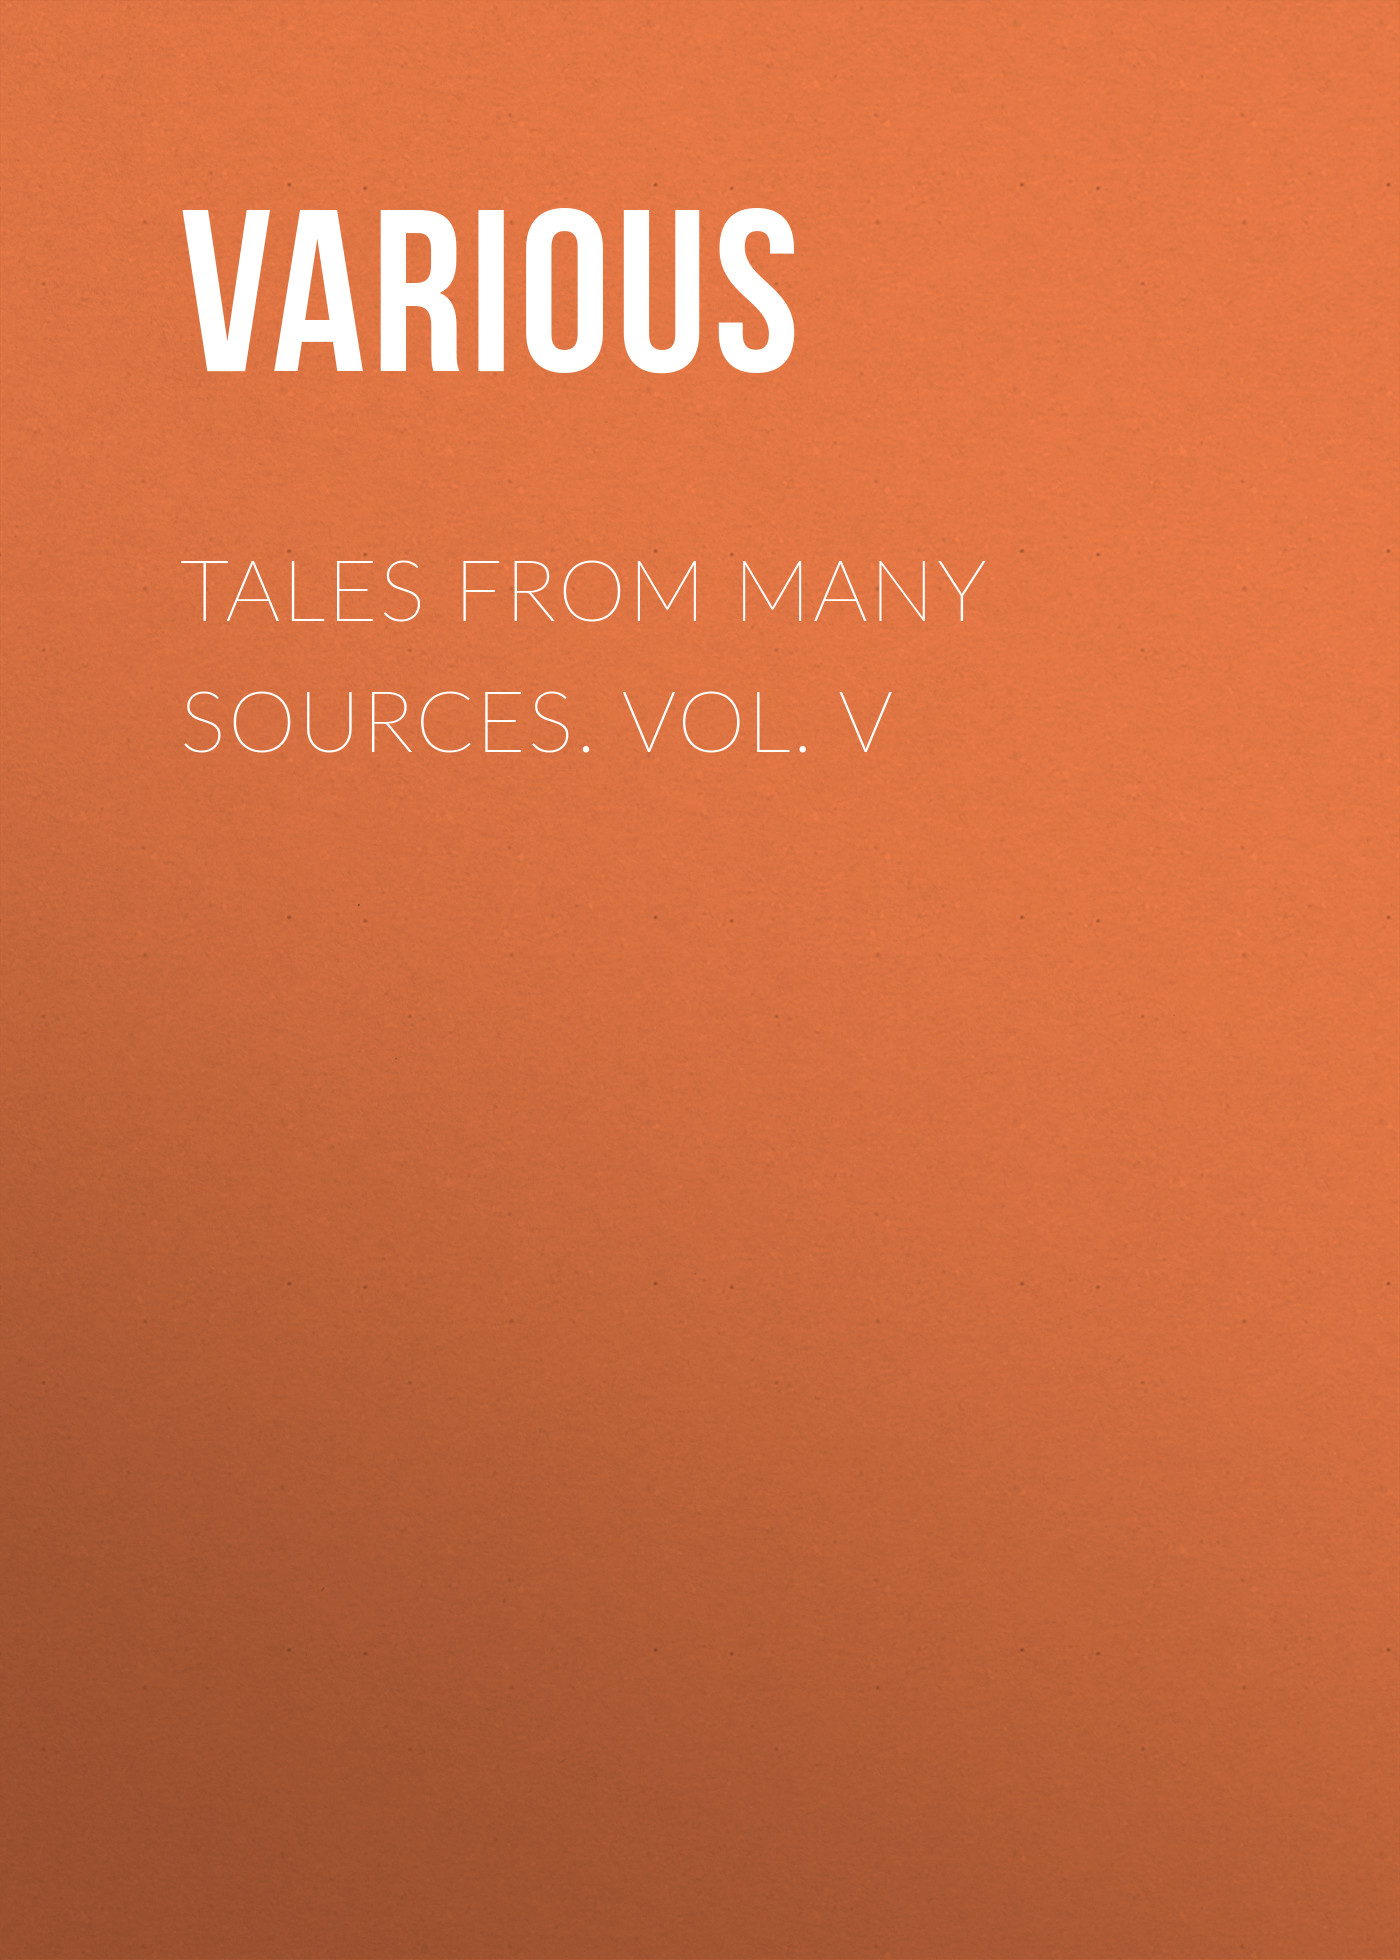 Various Tales from Many Sources. Vol. V sources